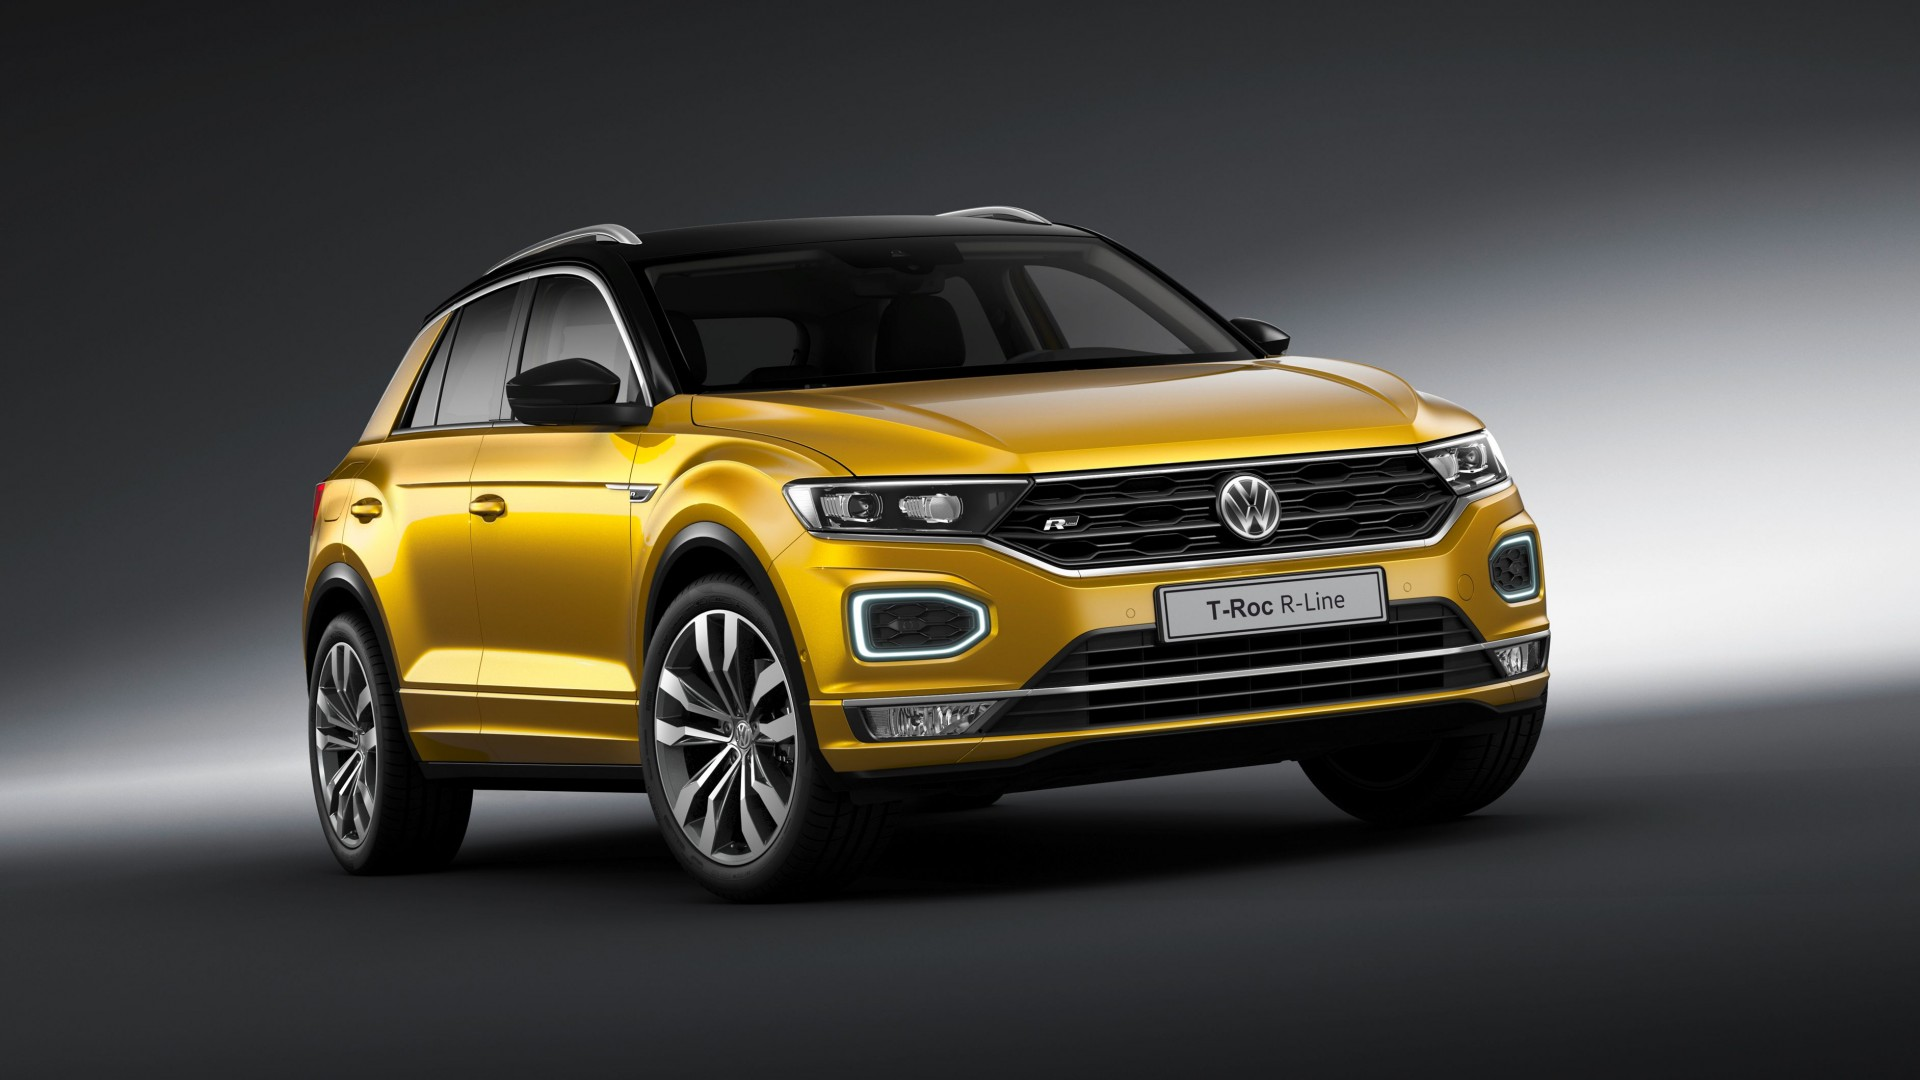 Volkswagen T Roc Specifications >> Volkswagen presenteert T-Roc met R-Line interieur en exterieur op IAA